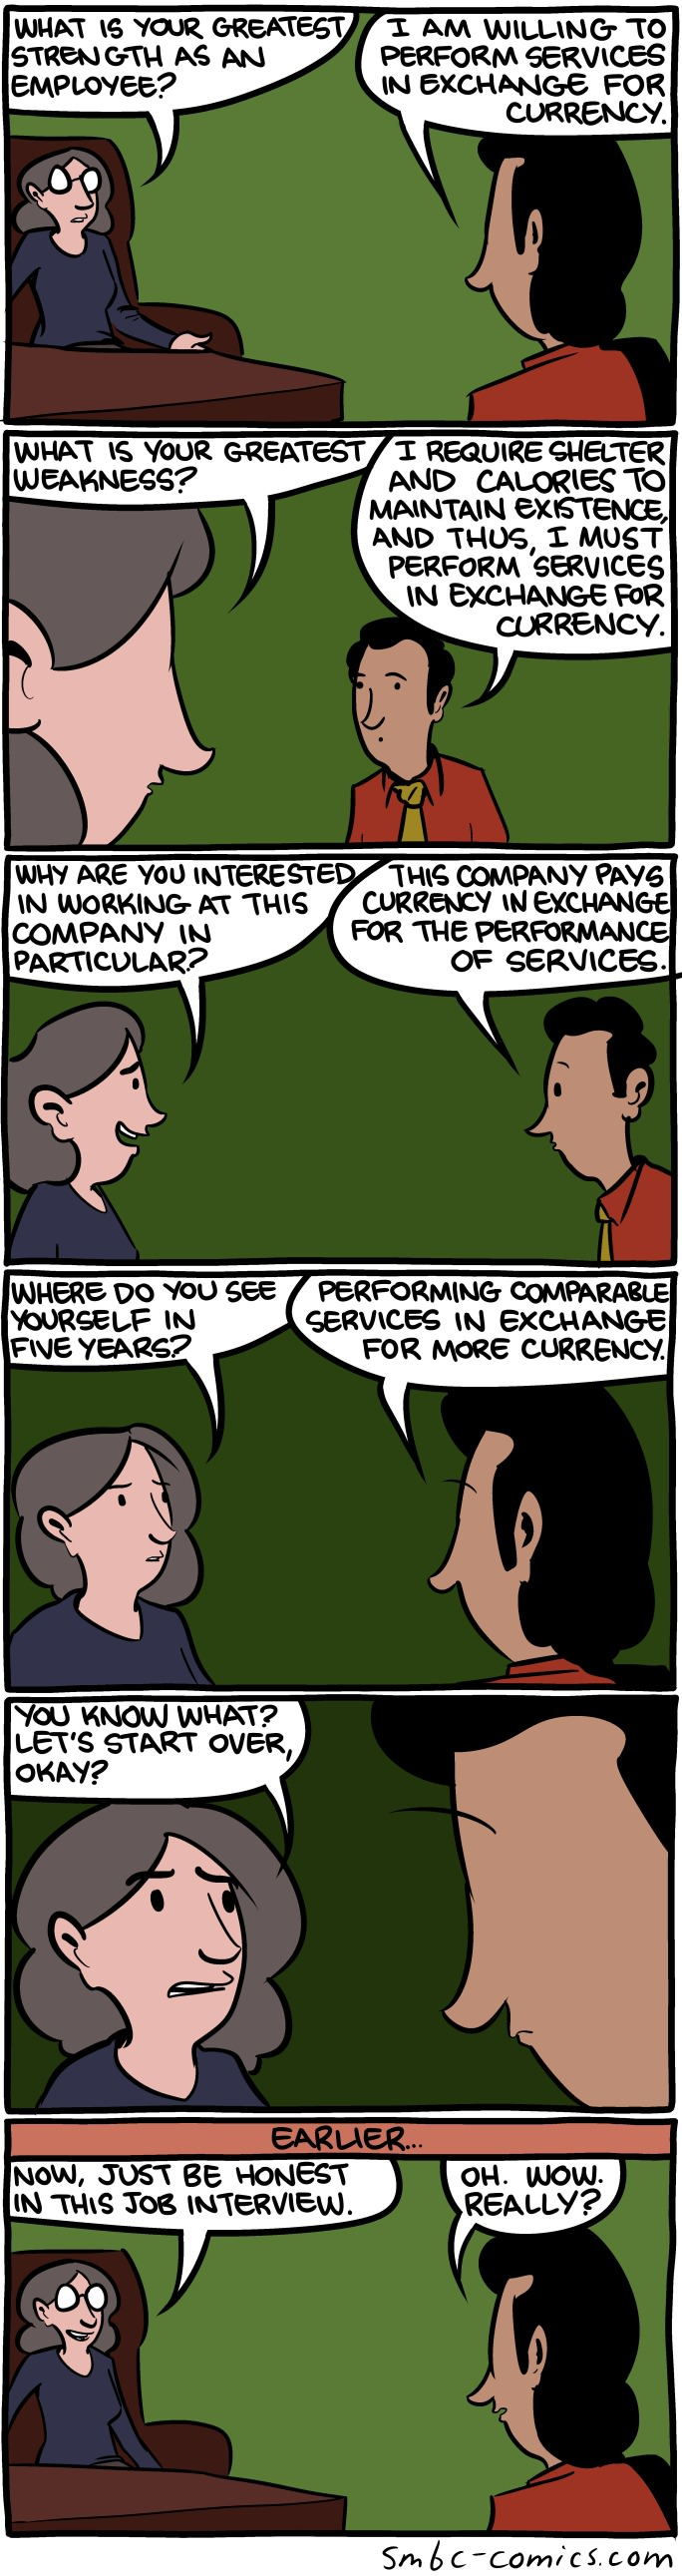 being honest in a job interview, comic, perform services in exchange for currency